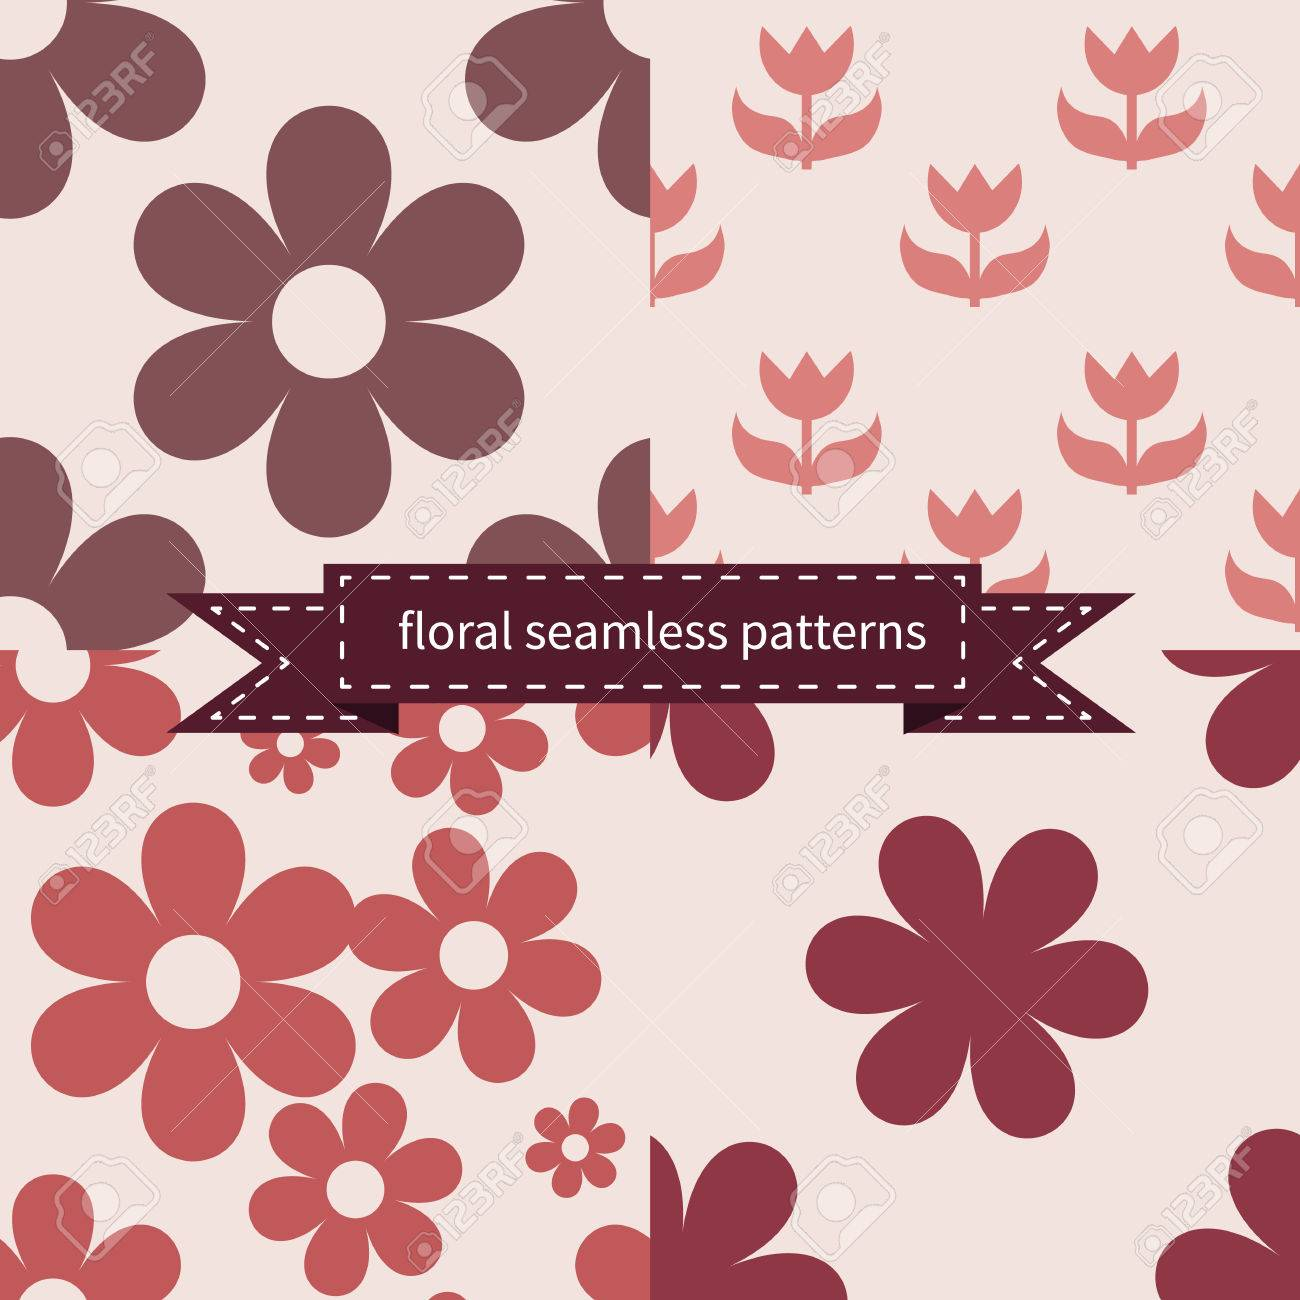 Set Of Flat Simple Floral Seamless Patterns With Marsala Colors